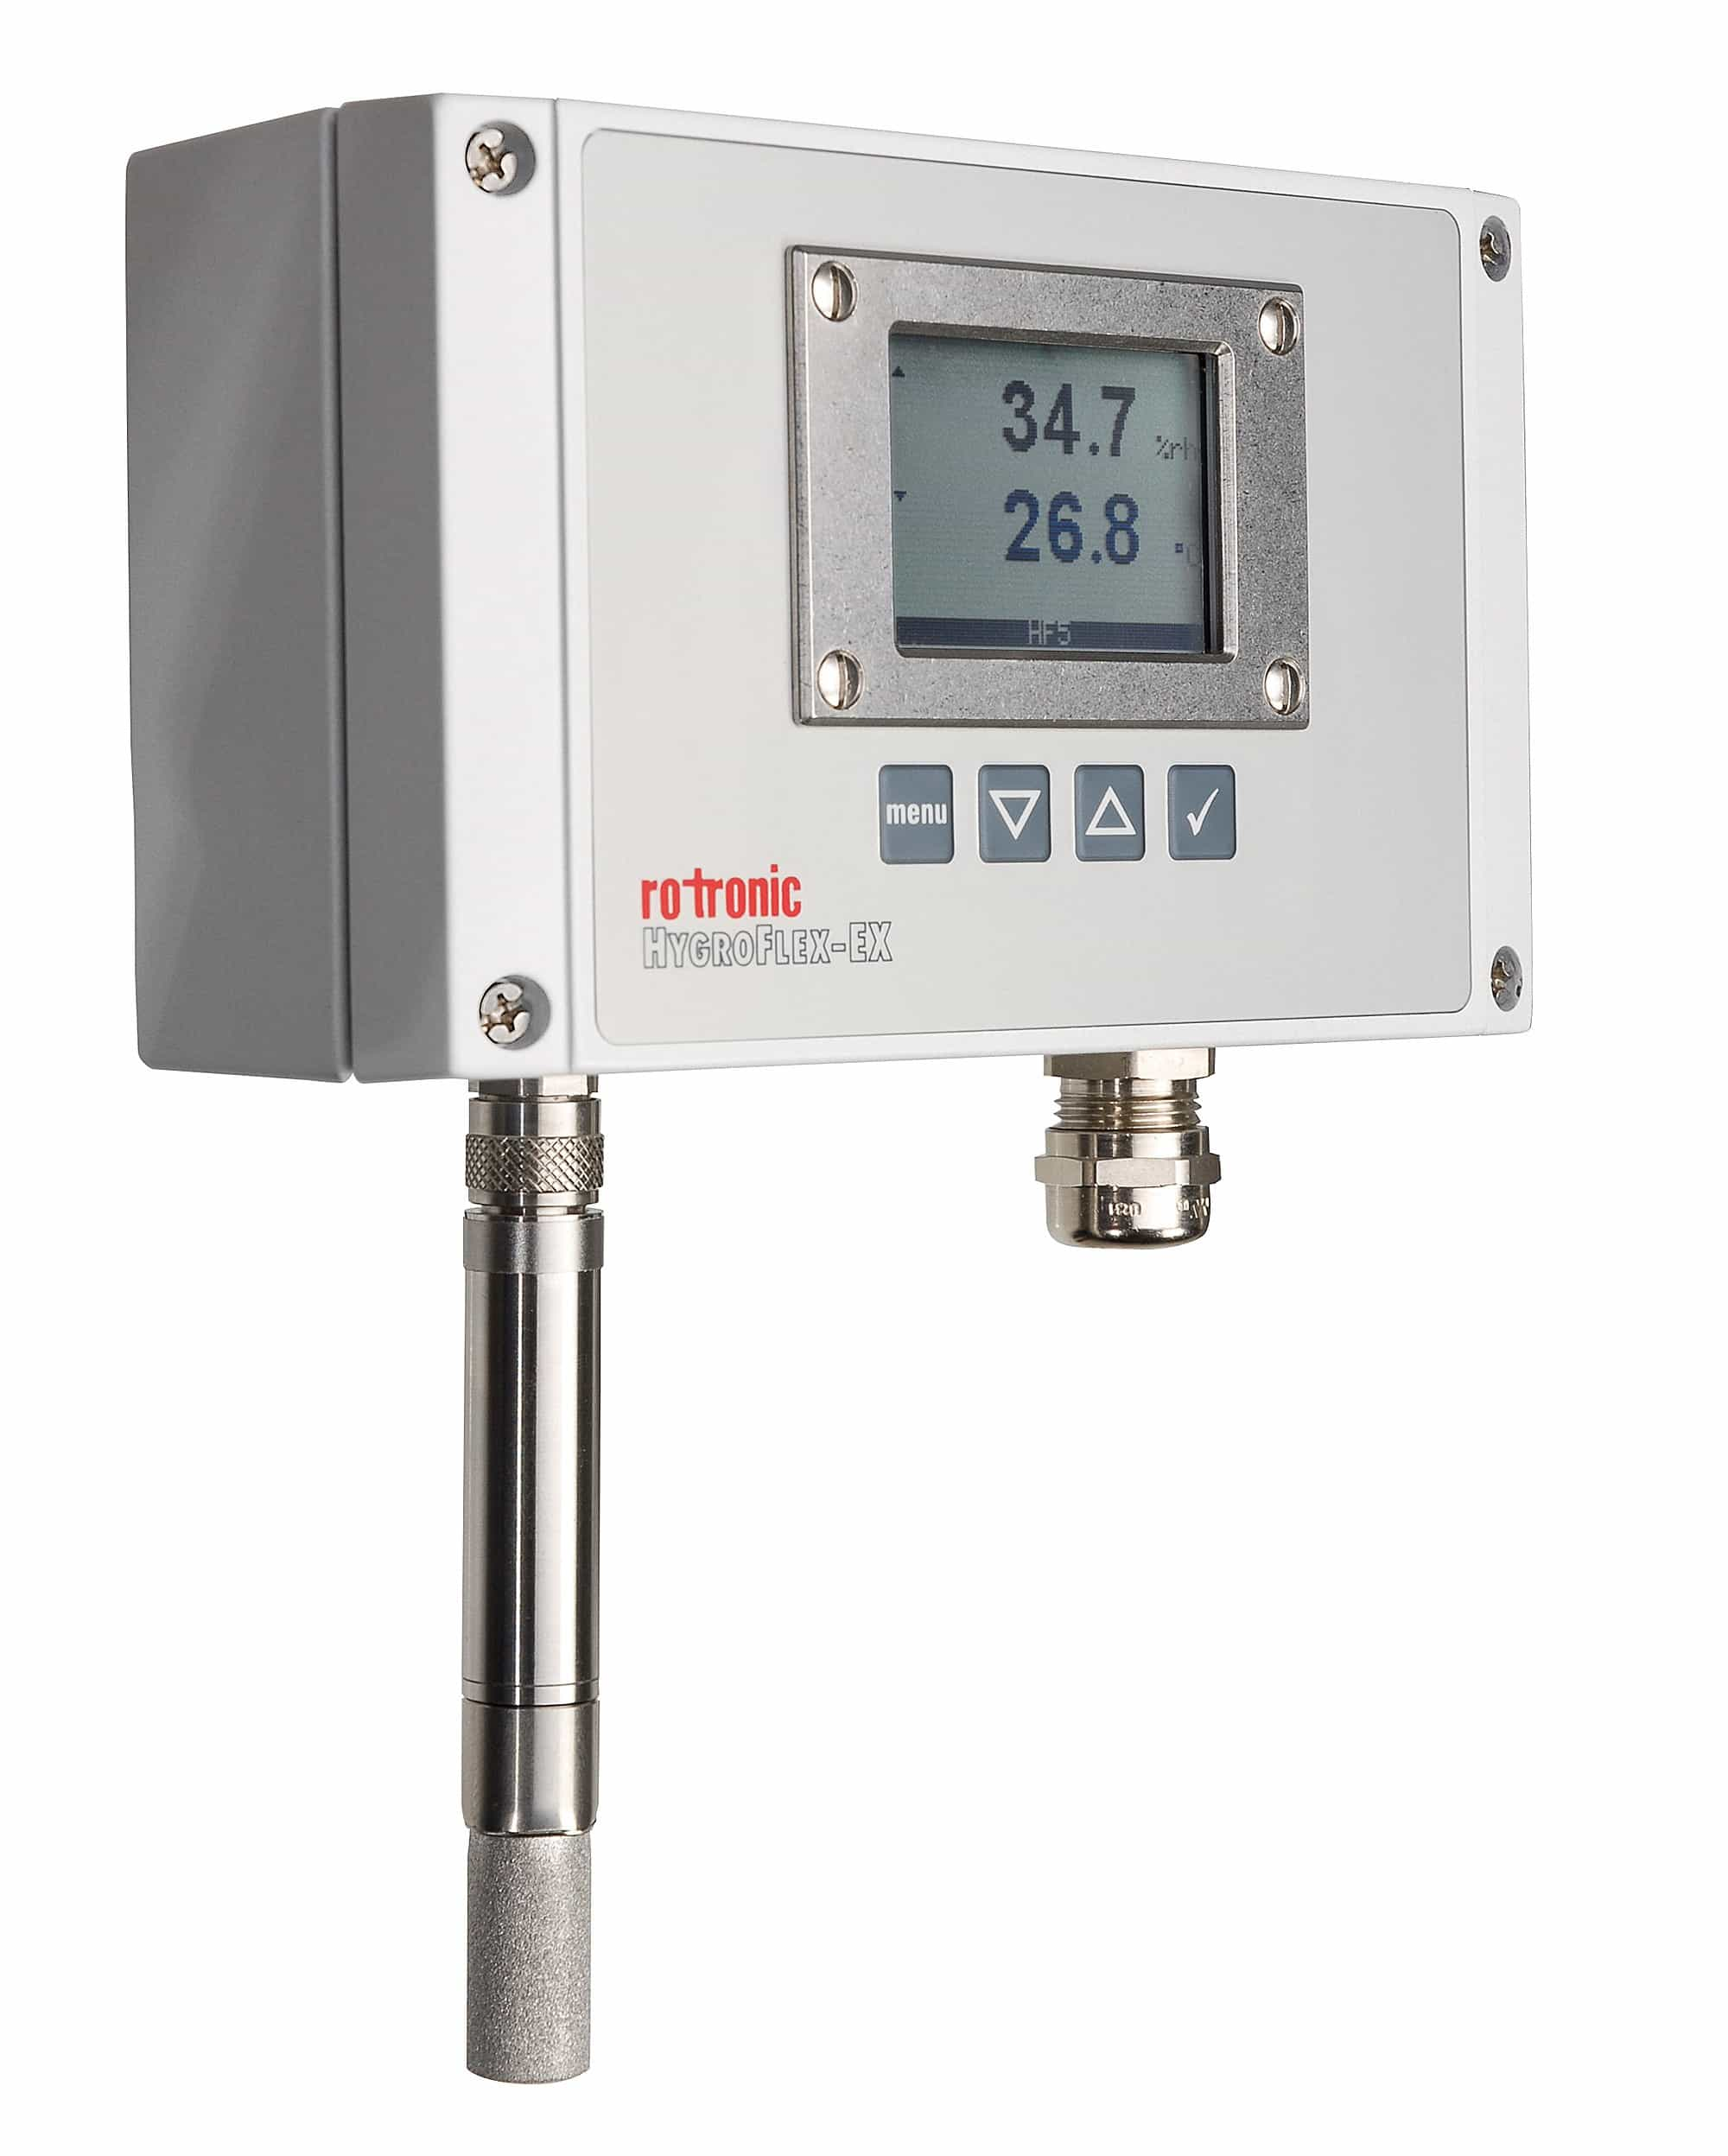 Rotronic HygroFlex5-EX: The ATEX Certified Temperature & Humidity Measurement Transmitter